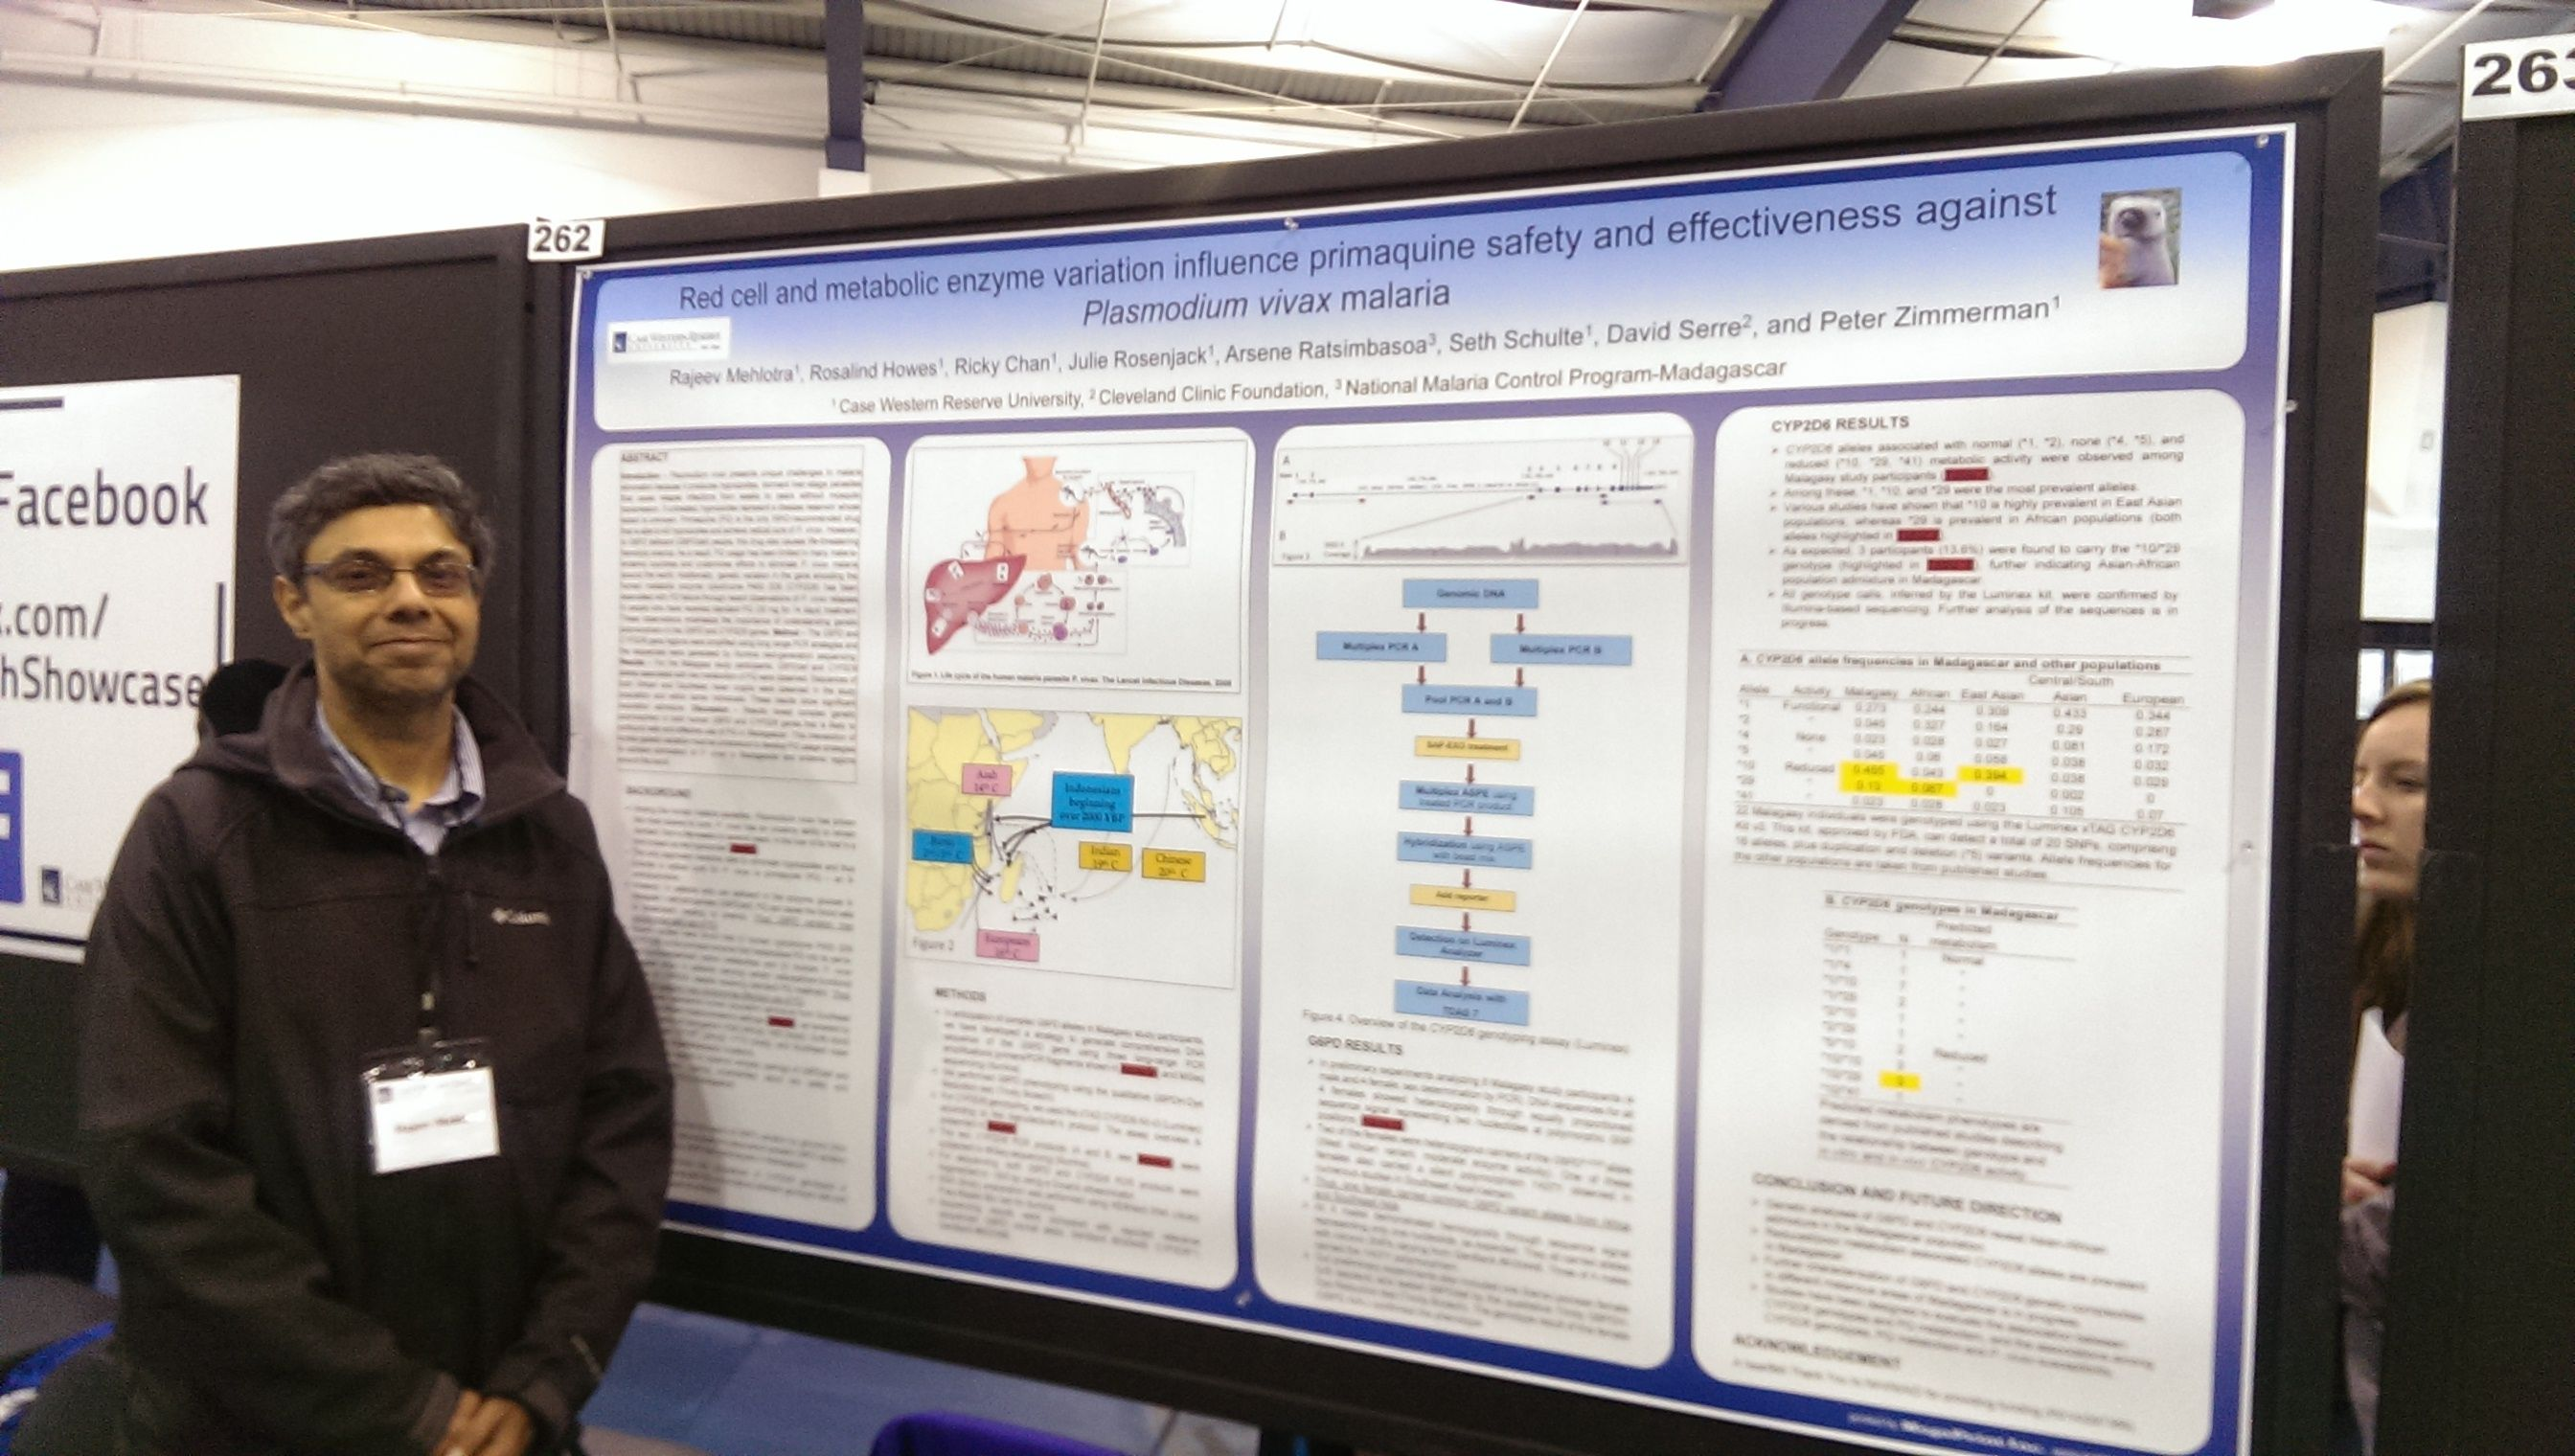 scientific research poster | Research Posters | Pinterest ...